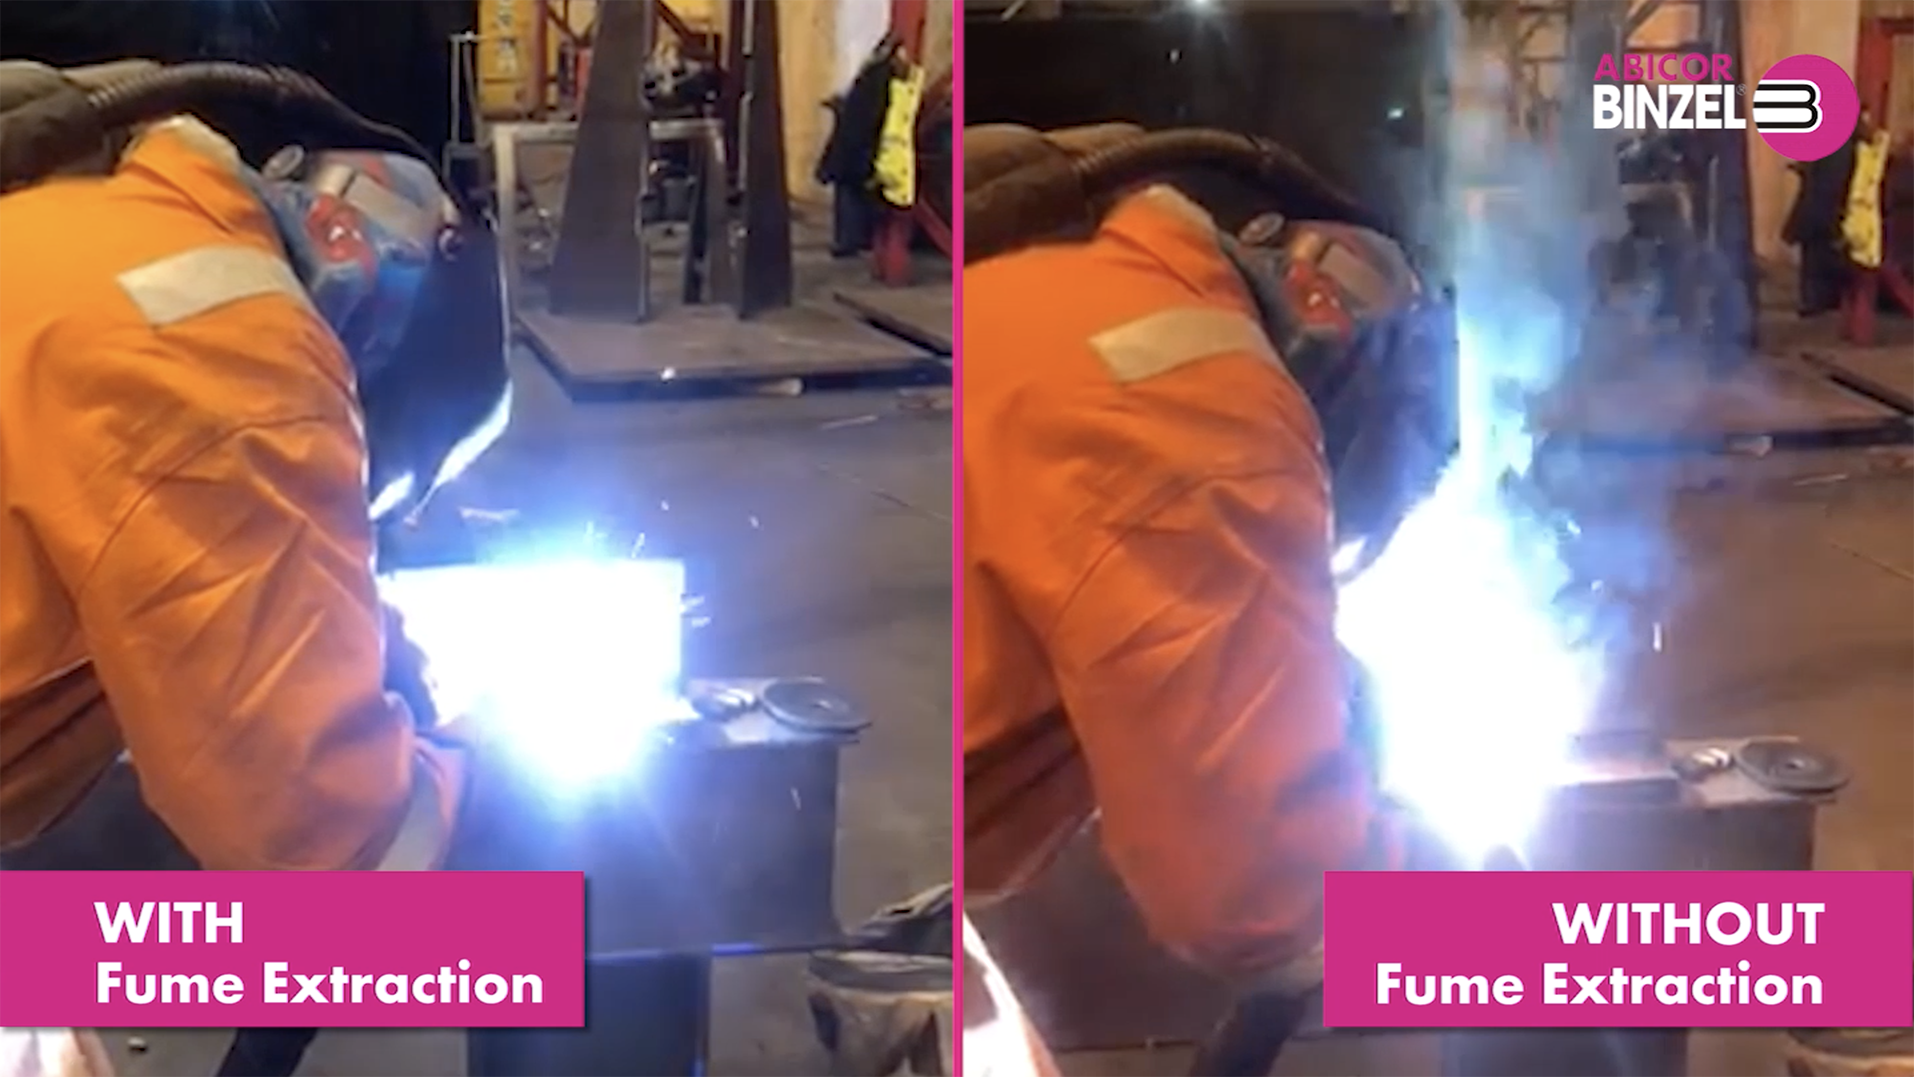 With Fume Extraction v Without Fume Extraction